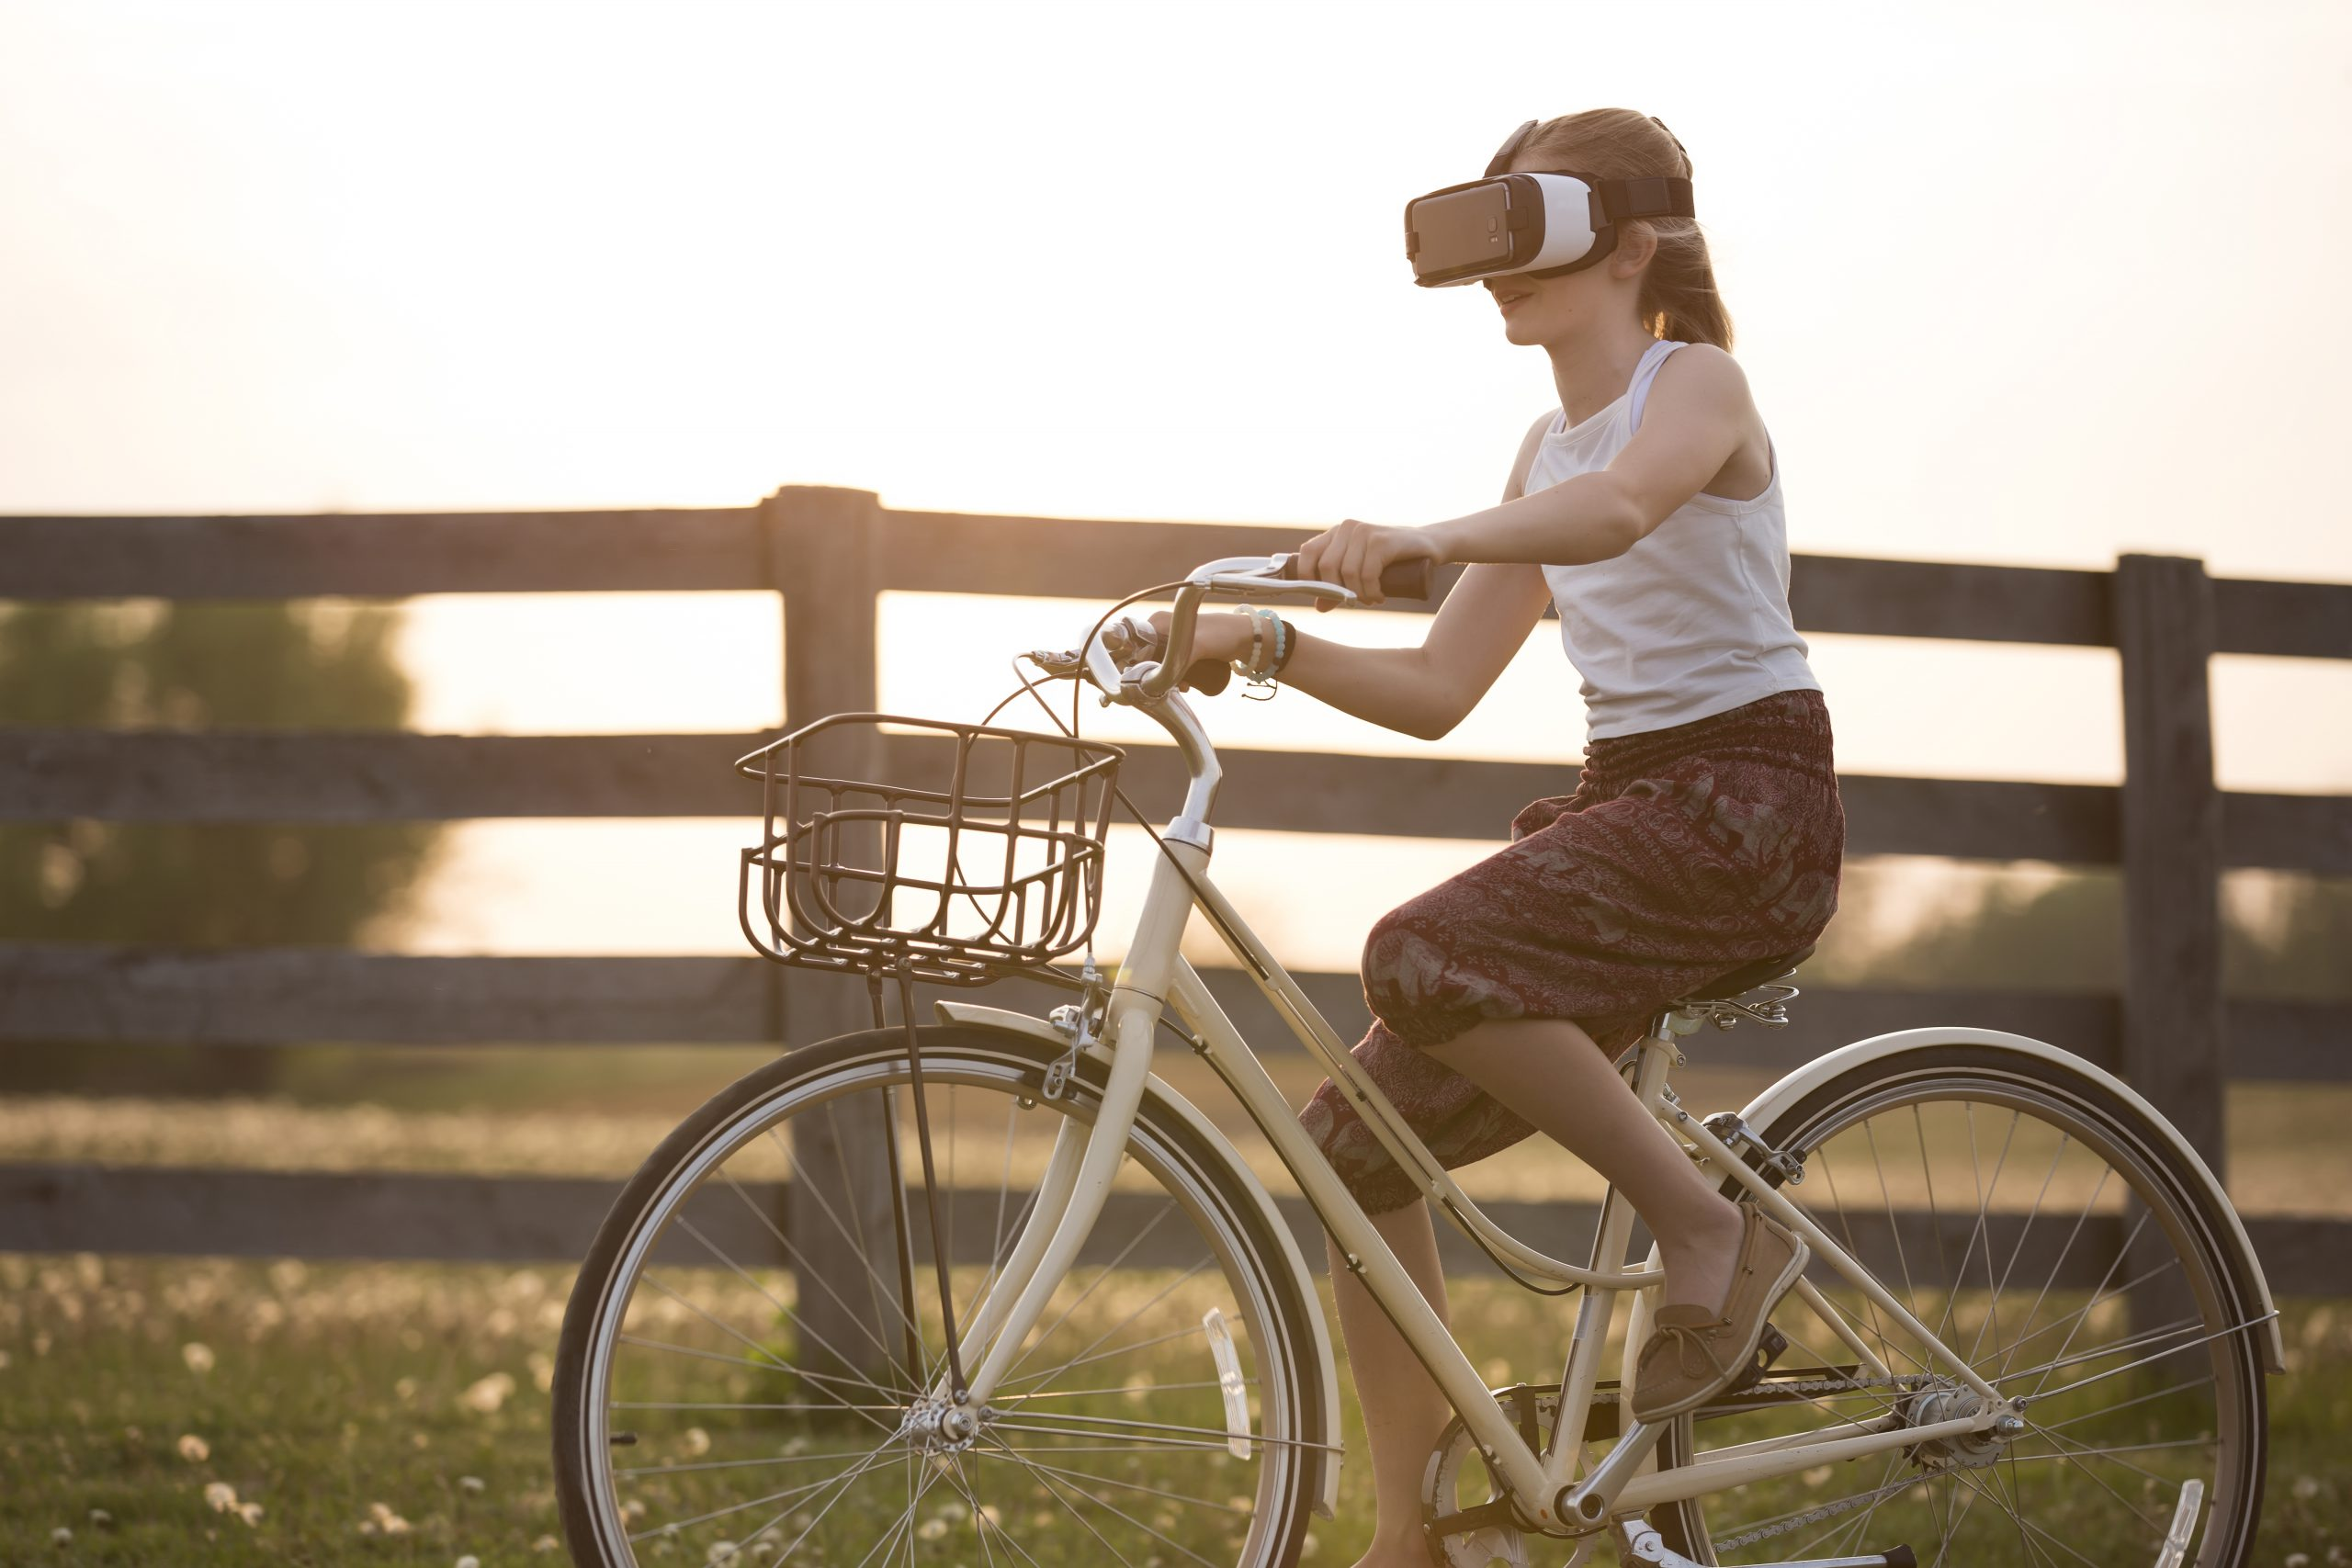 Futures Made of Virtual Reality Now